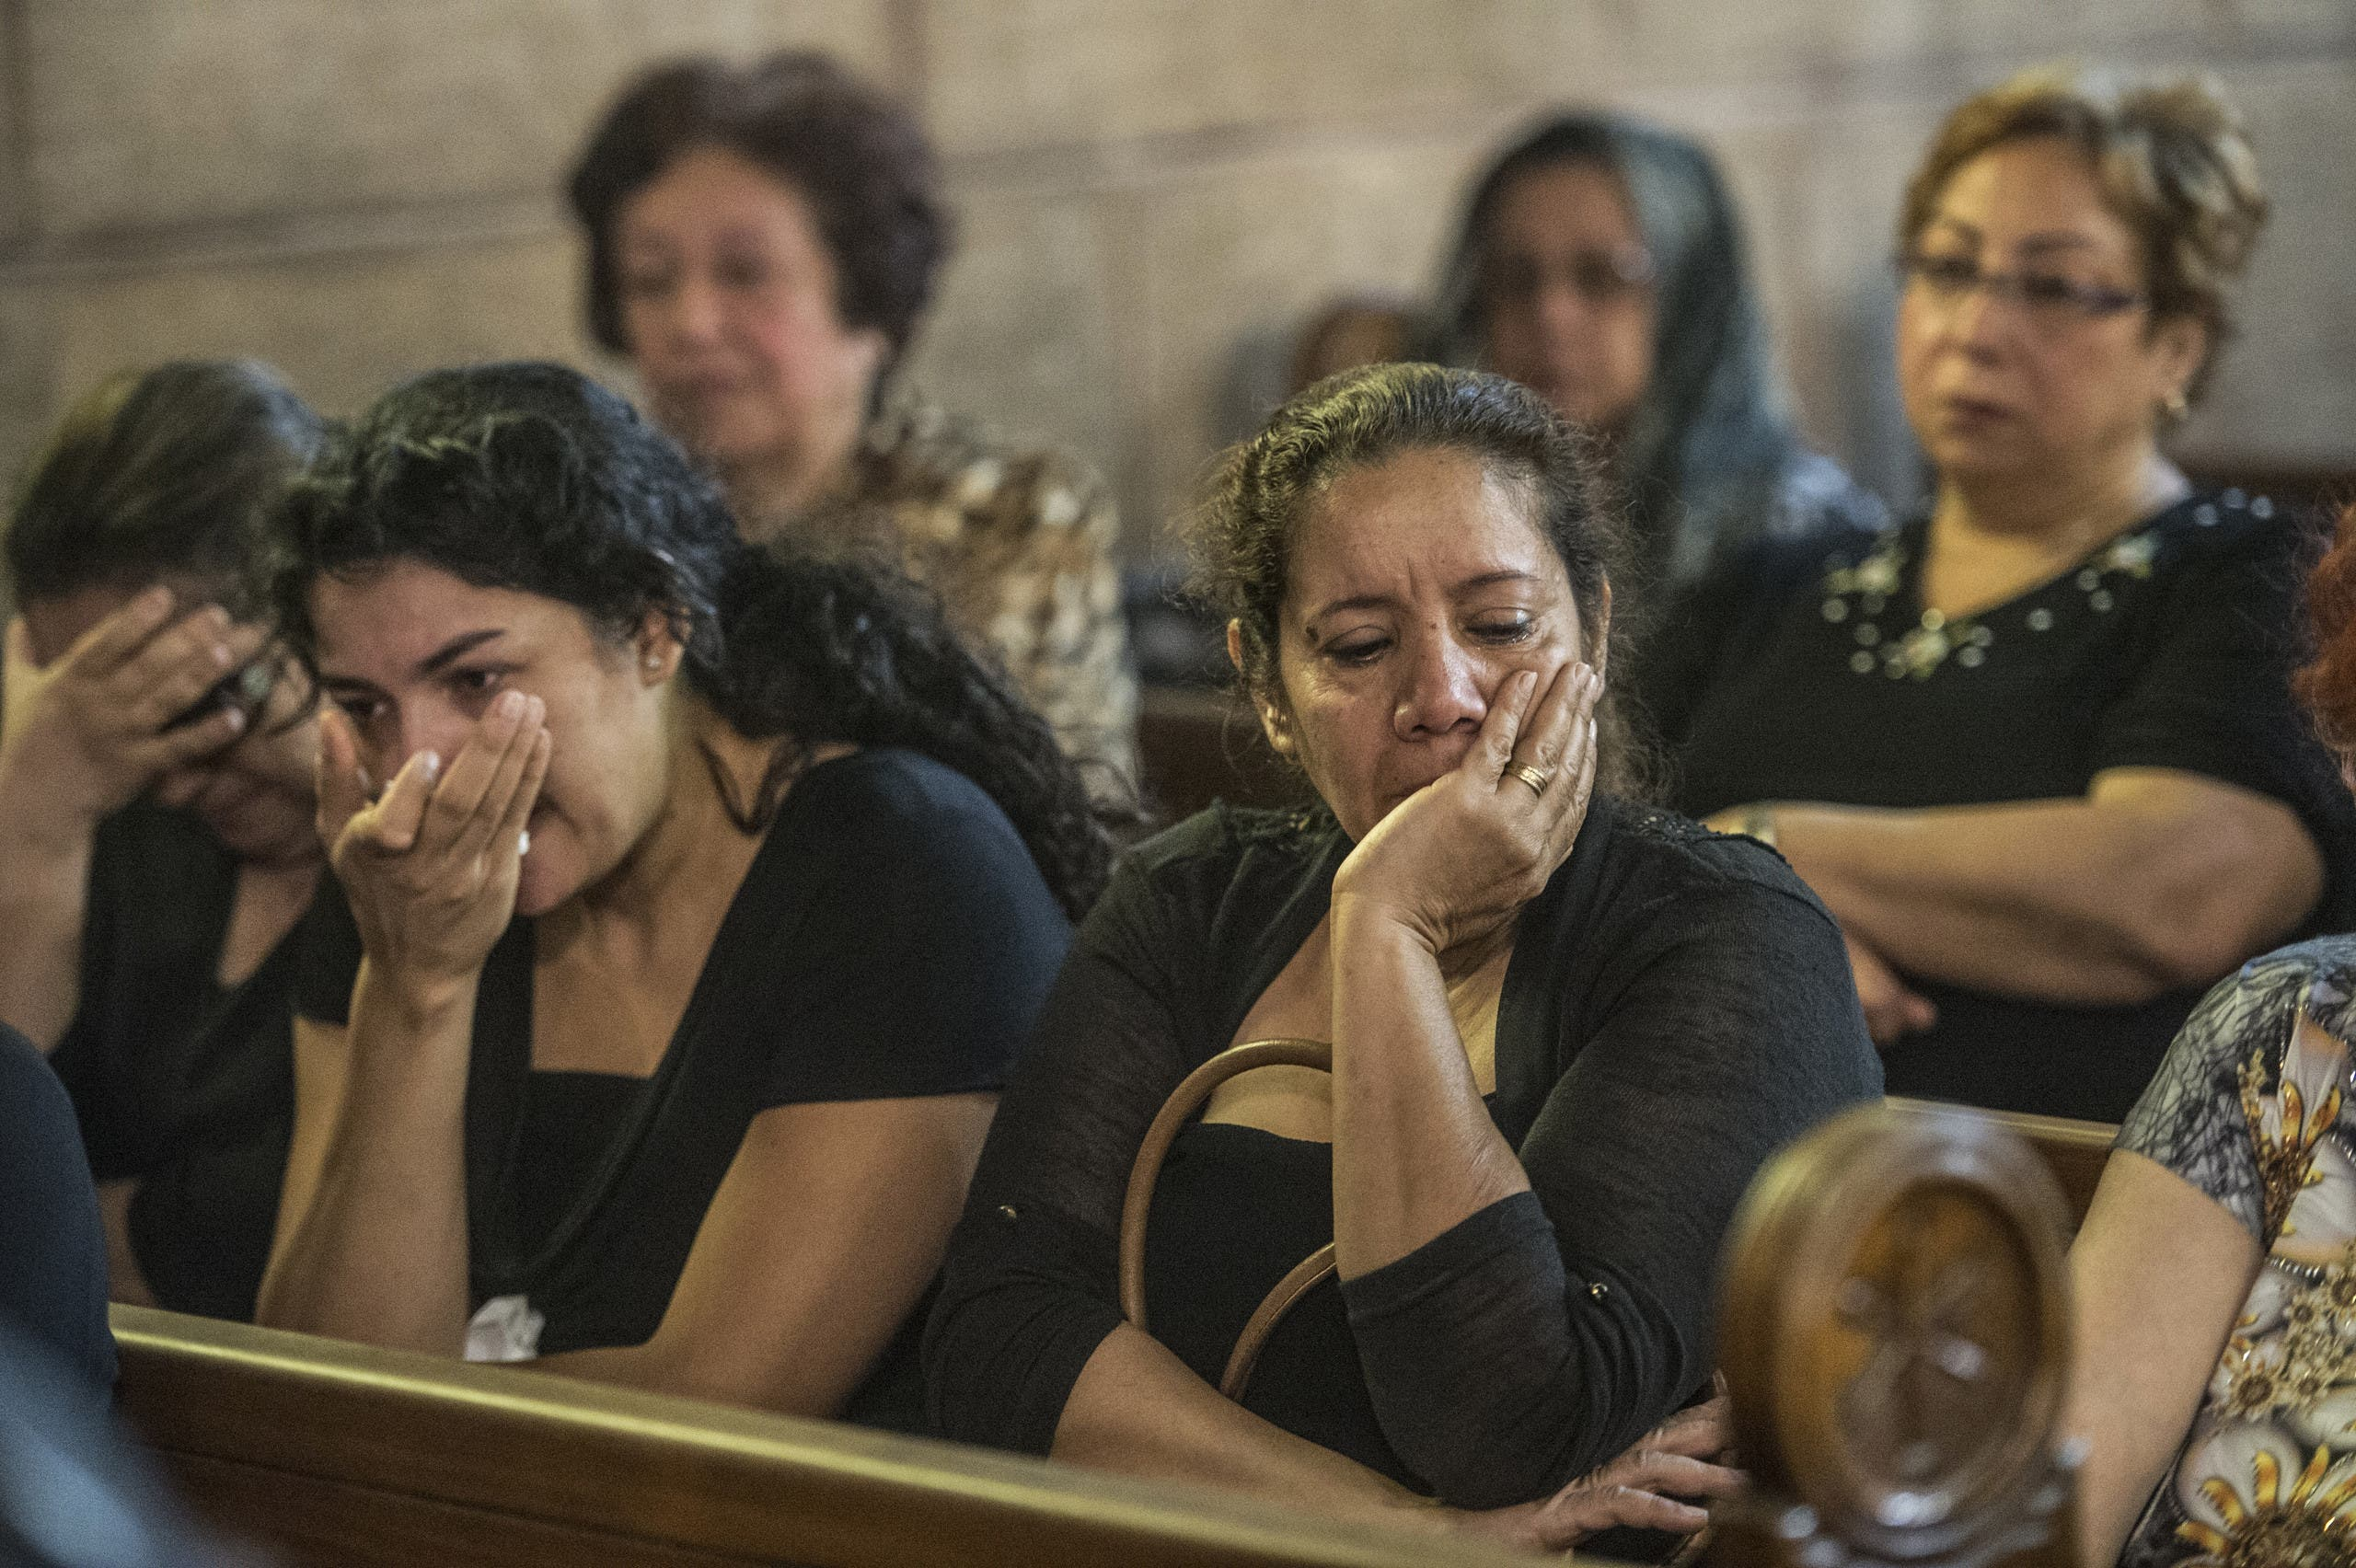 Relatives and friends of the cabin crew and passengers, who were on board the EgyptAir plane that crashed in the Mediterranean, attend a mourning ceremony on May 22, 2016 at the Saint Peter and Saint Paul Coptic Orthodox Church in Cairo's Abbasiya district. (AFP)